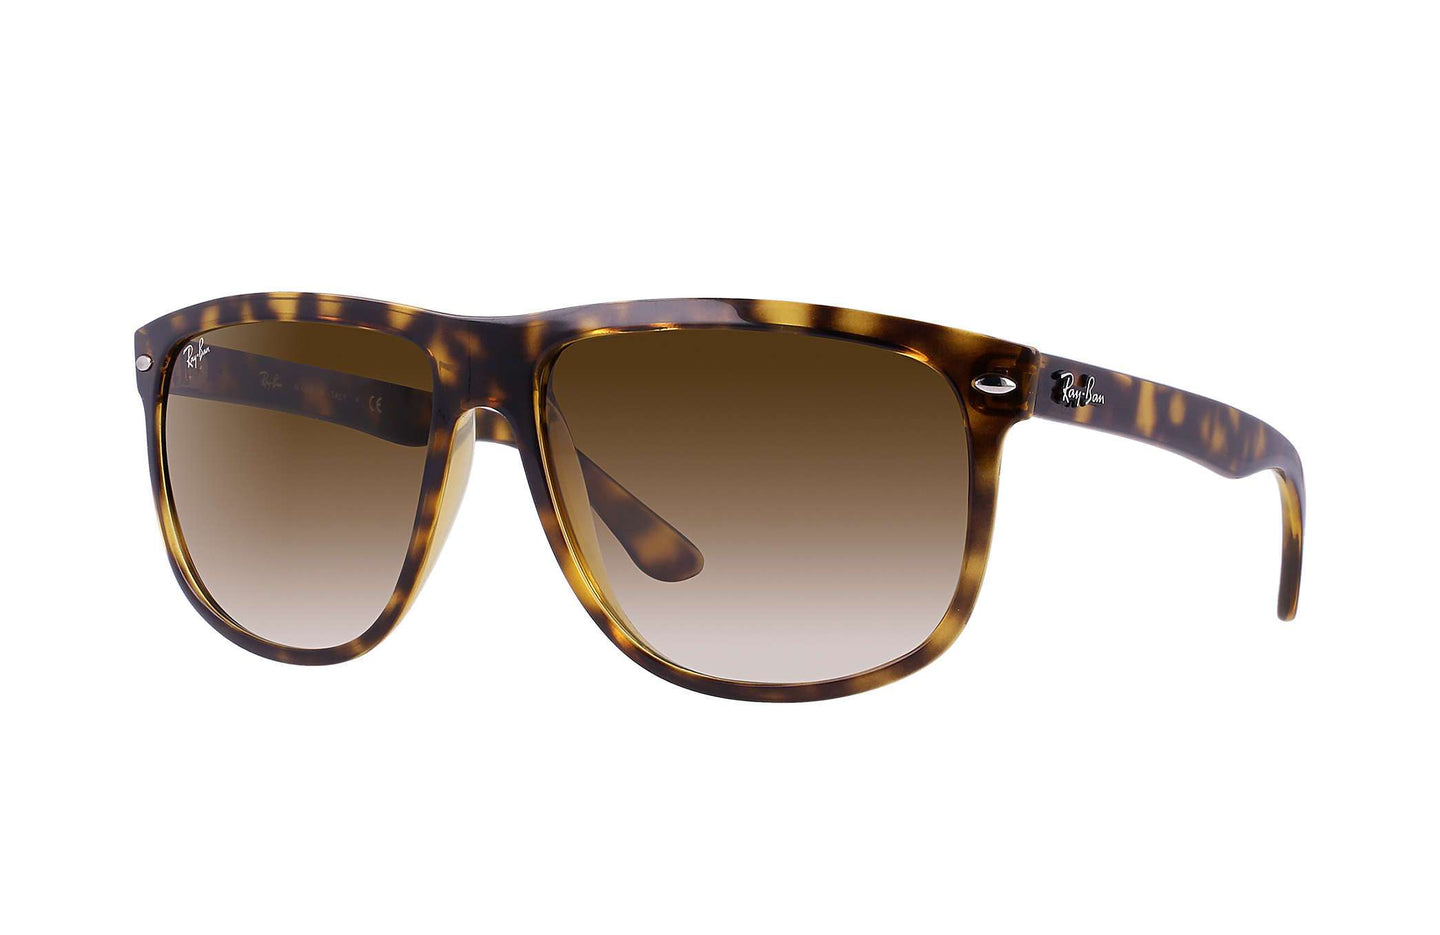 shades-of-charleston - Ray-Ban 4147 Boyfriend - Ray-Ban - Sunglasses